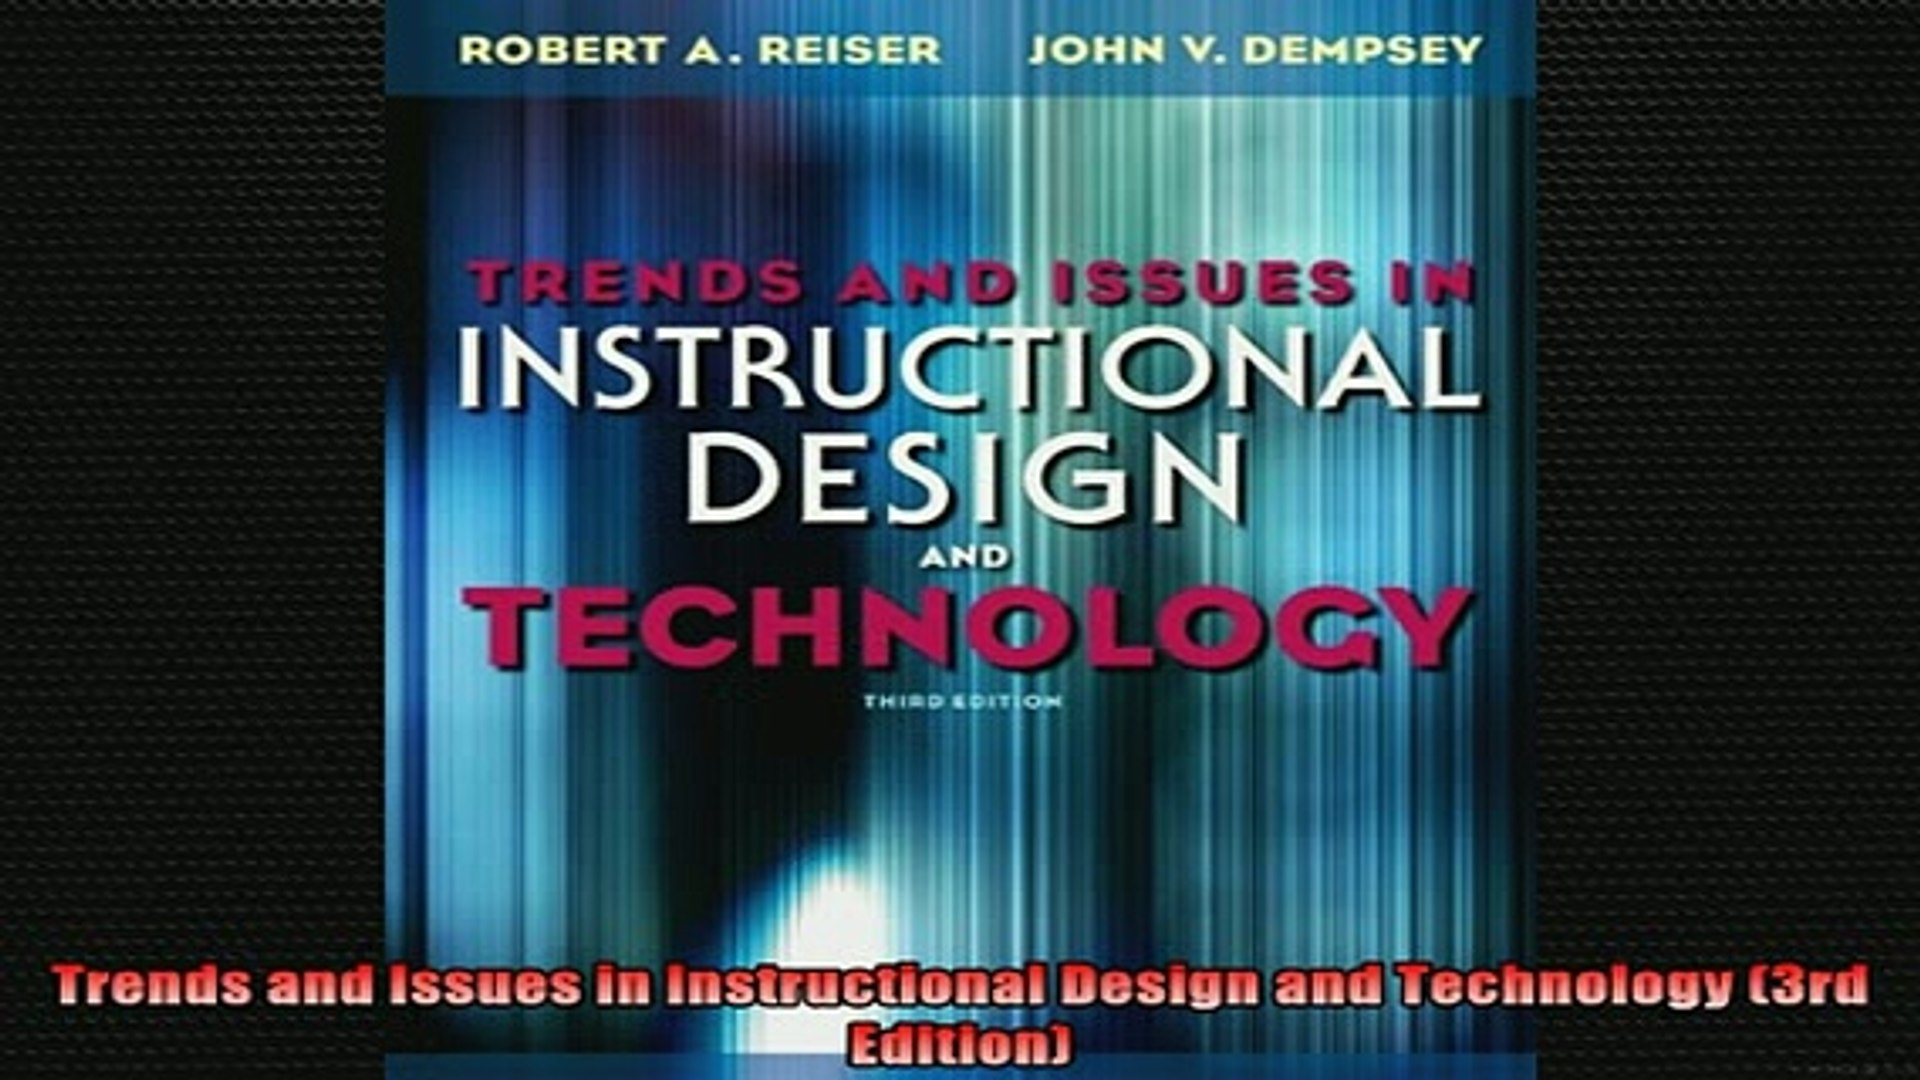 Read Book Trends And Issues In Instructional Design And Technology 3rd Edition Full Ebook Online Free Video Dailymotion